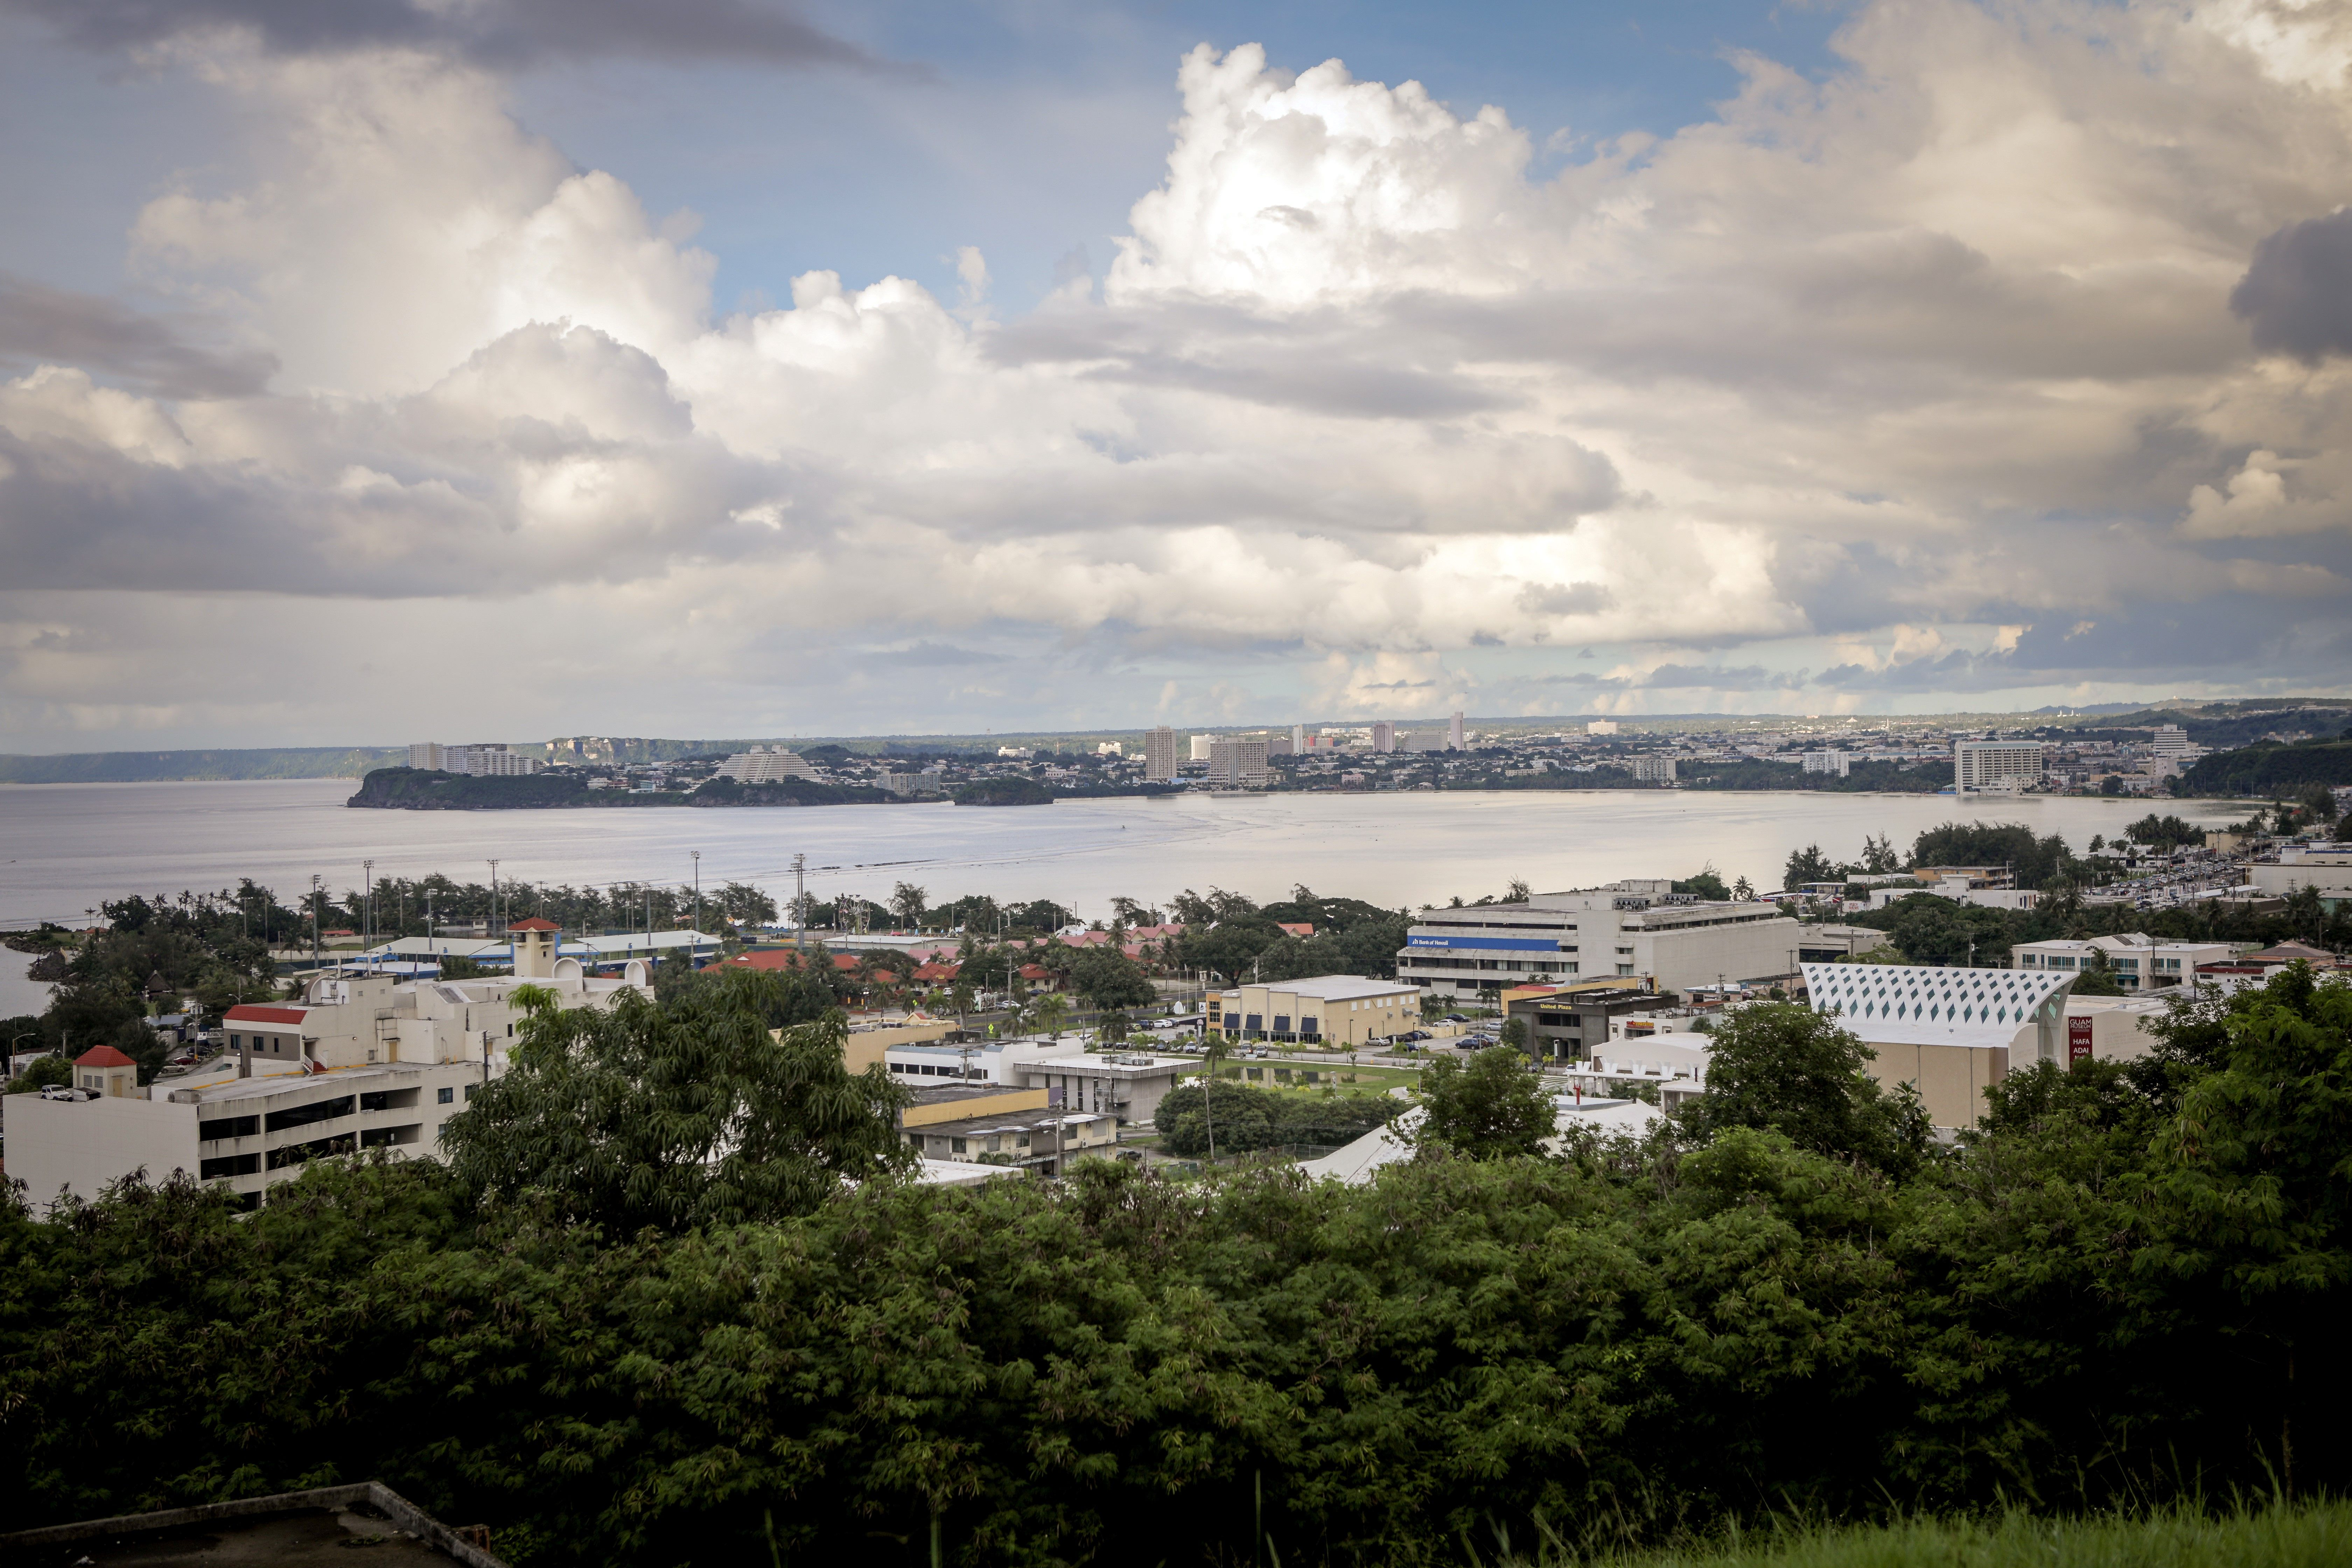 This general view shows the city of Tamuning on the island of Guam on Aug. 10, 2017.                     Guam's governor on Aug. 10 said the US territory was  well-equipped  to handle any North Korean strike thanks to robust infrastructure that had survived earthquakes and typhoons, after Pyongyang released a detailed plan to launch missiles towards the island.